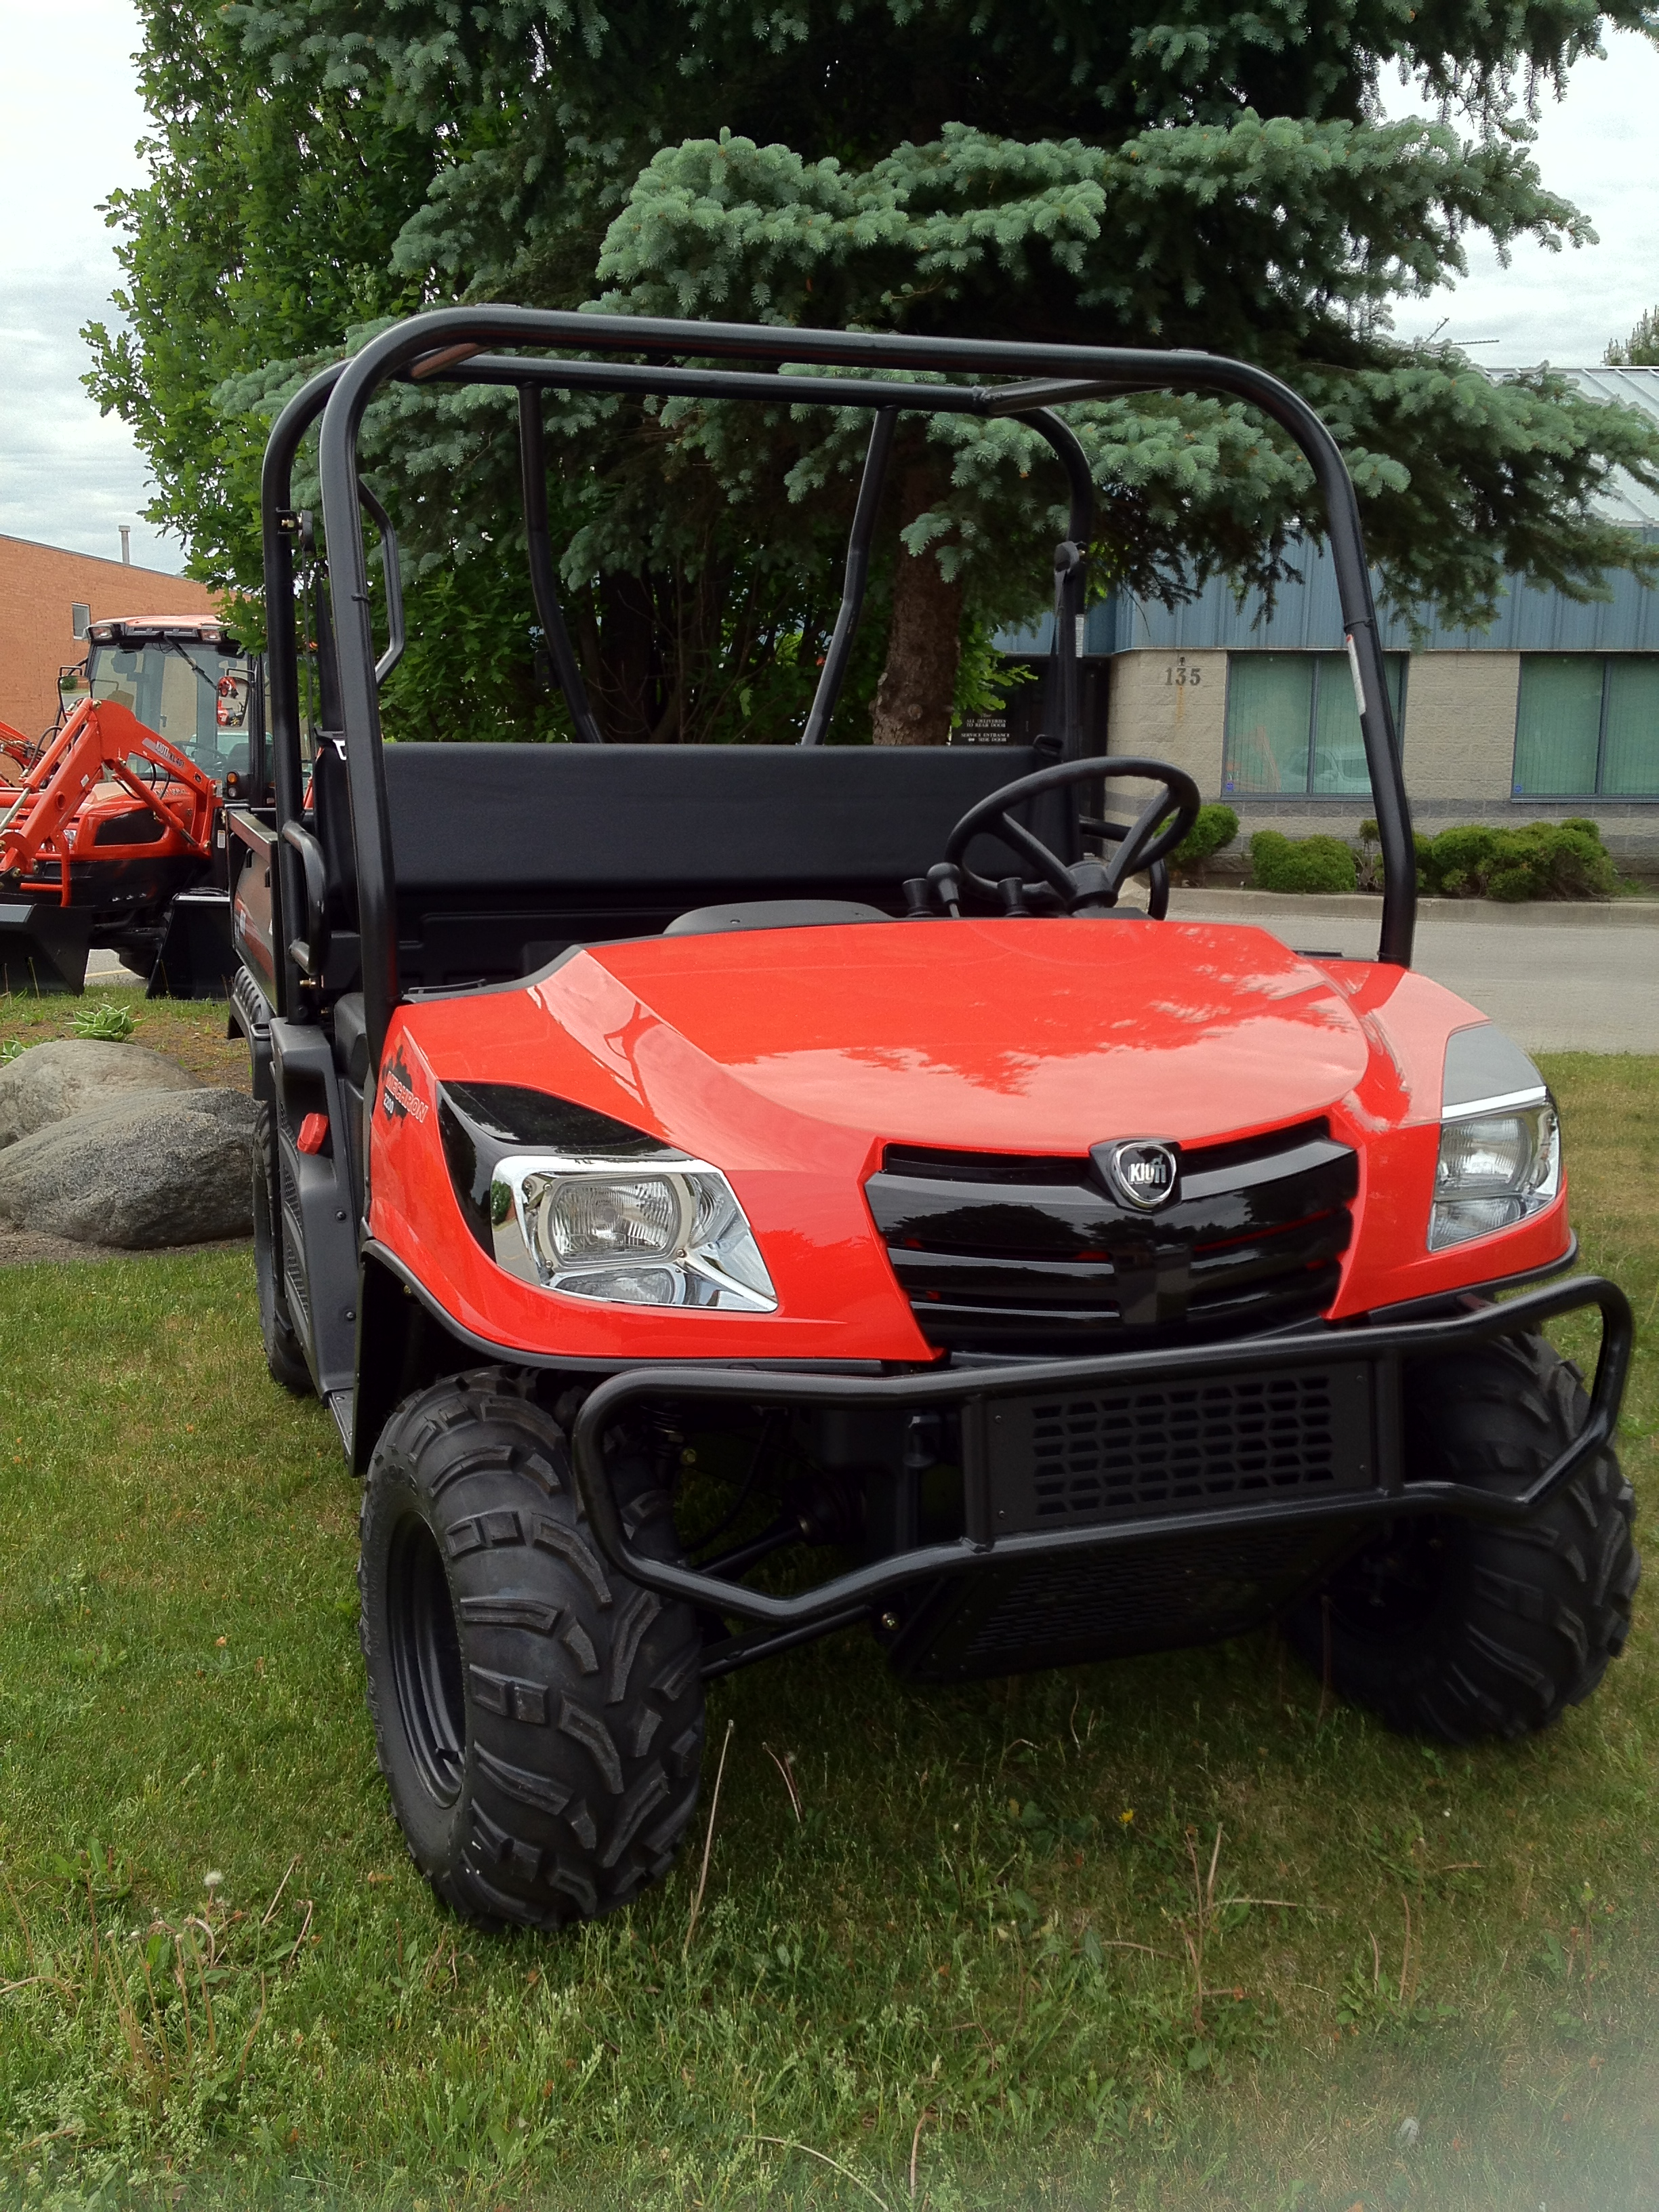 Kioti Mechron UTV DEMO 22HP Diesel 4wd w/ Diff Lock 2 Range CVT Transmission Full Factory Warranty remains